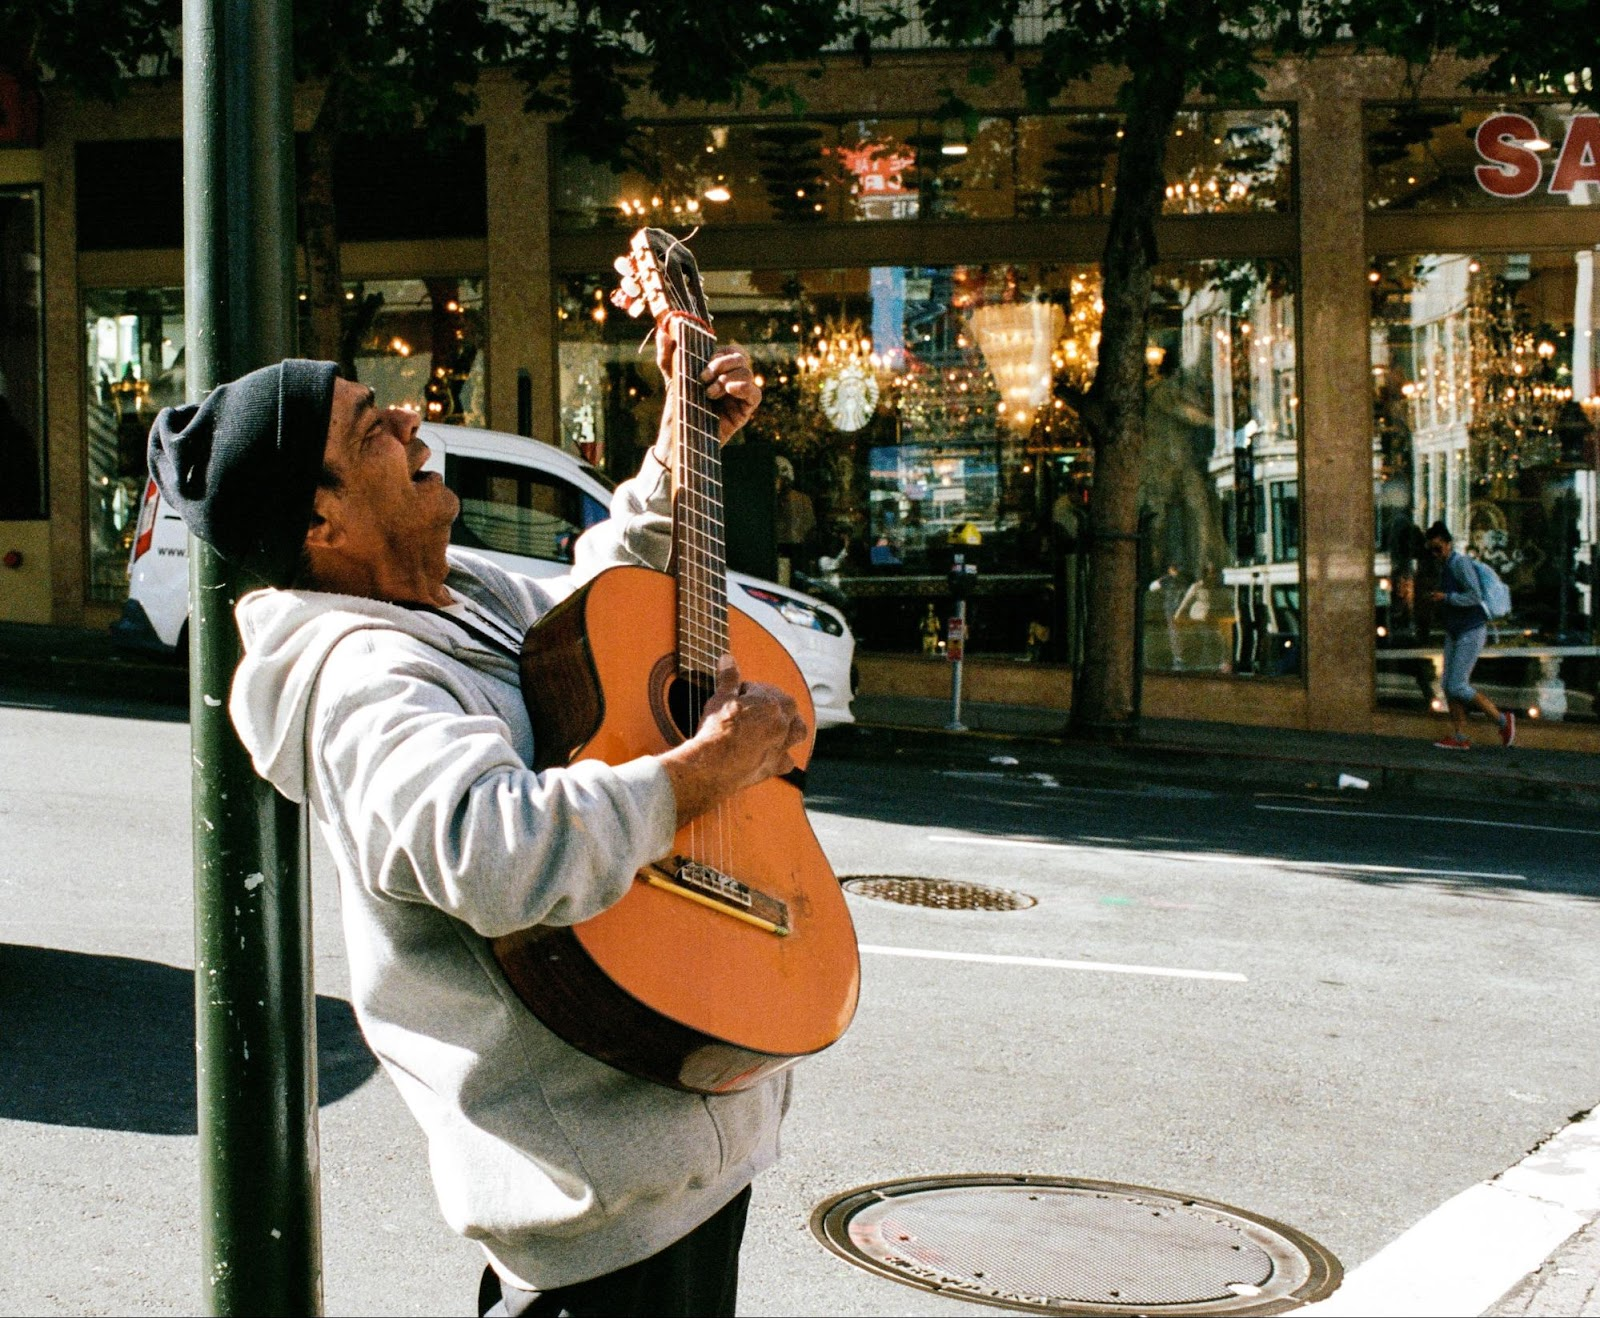 A busker with a guitar